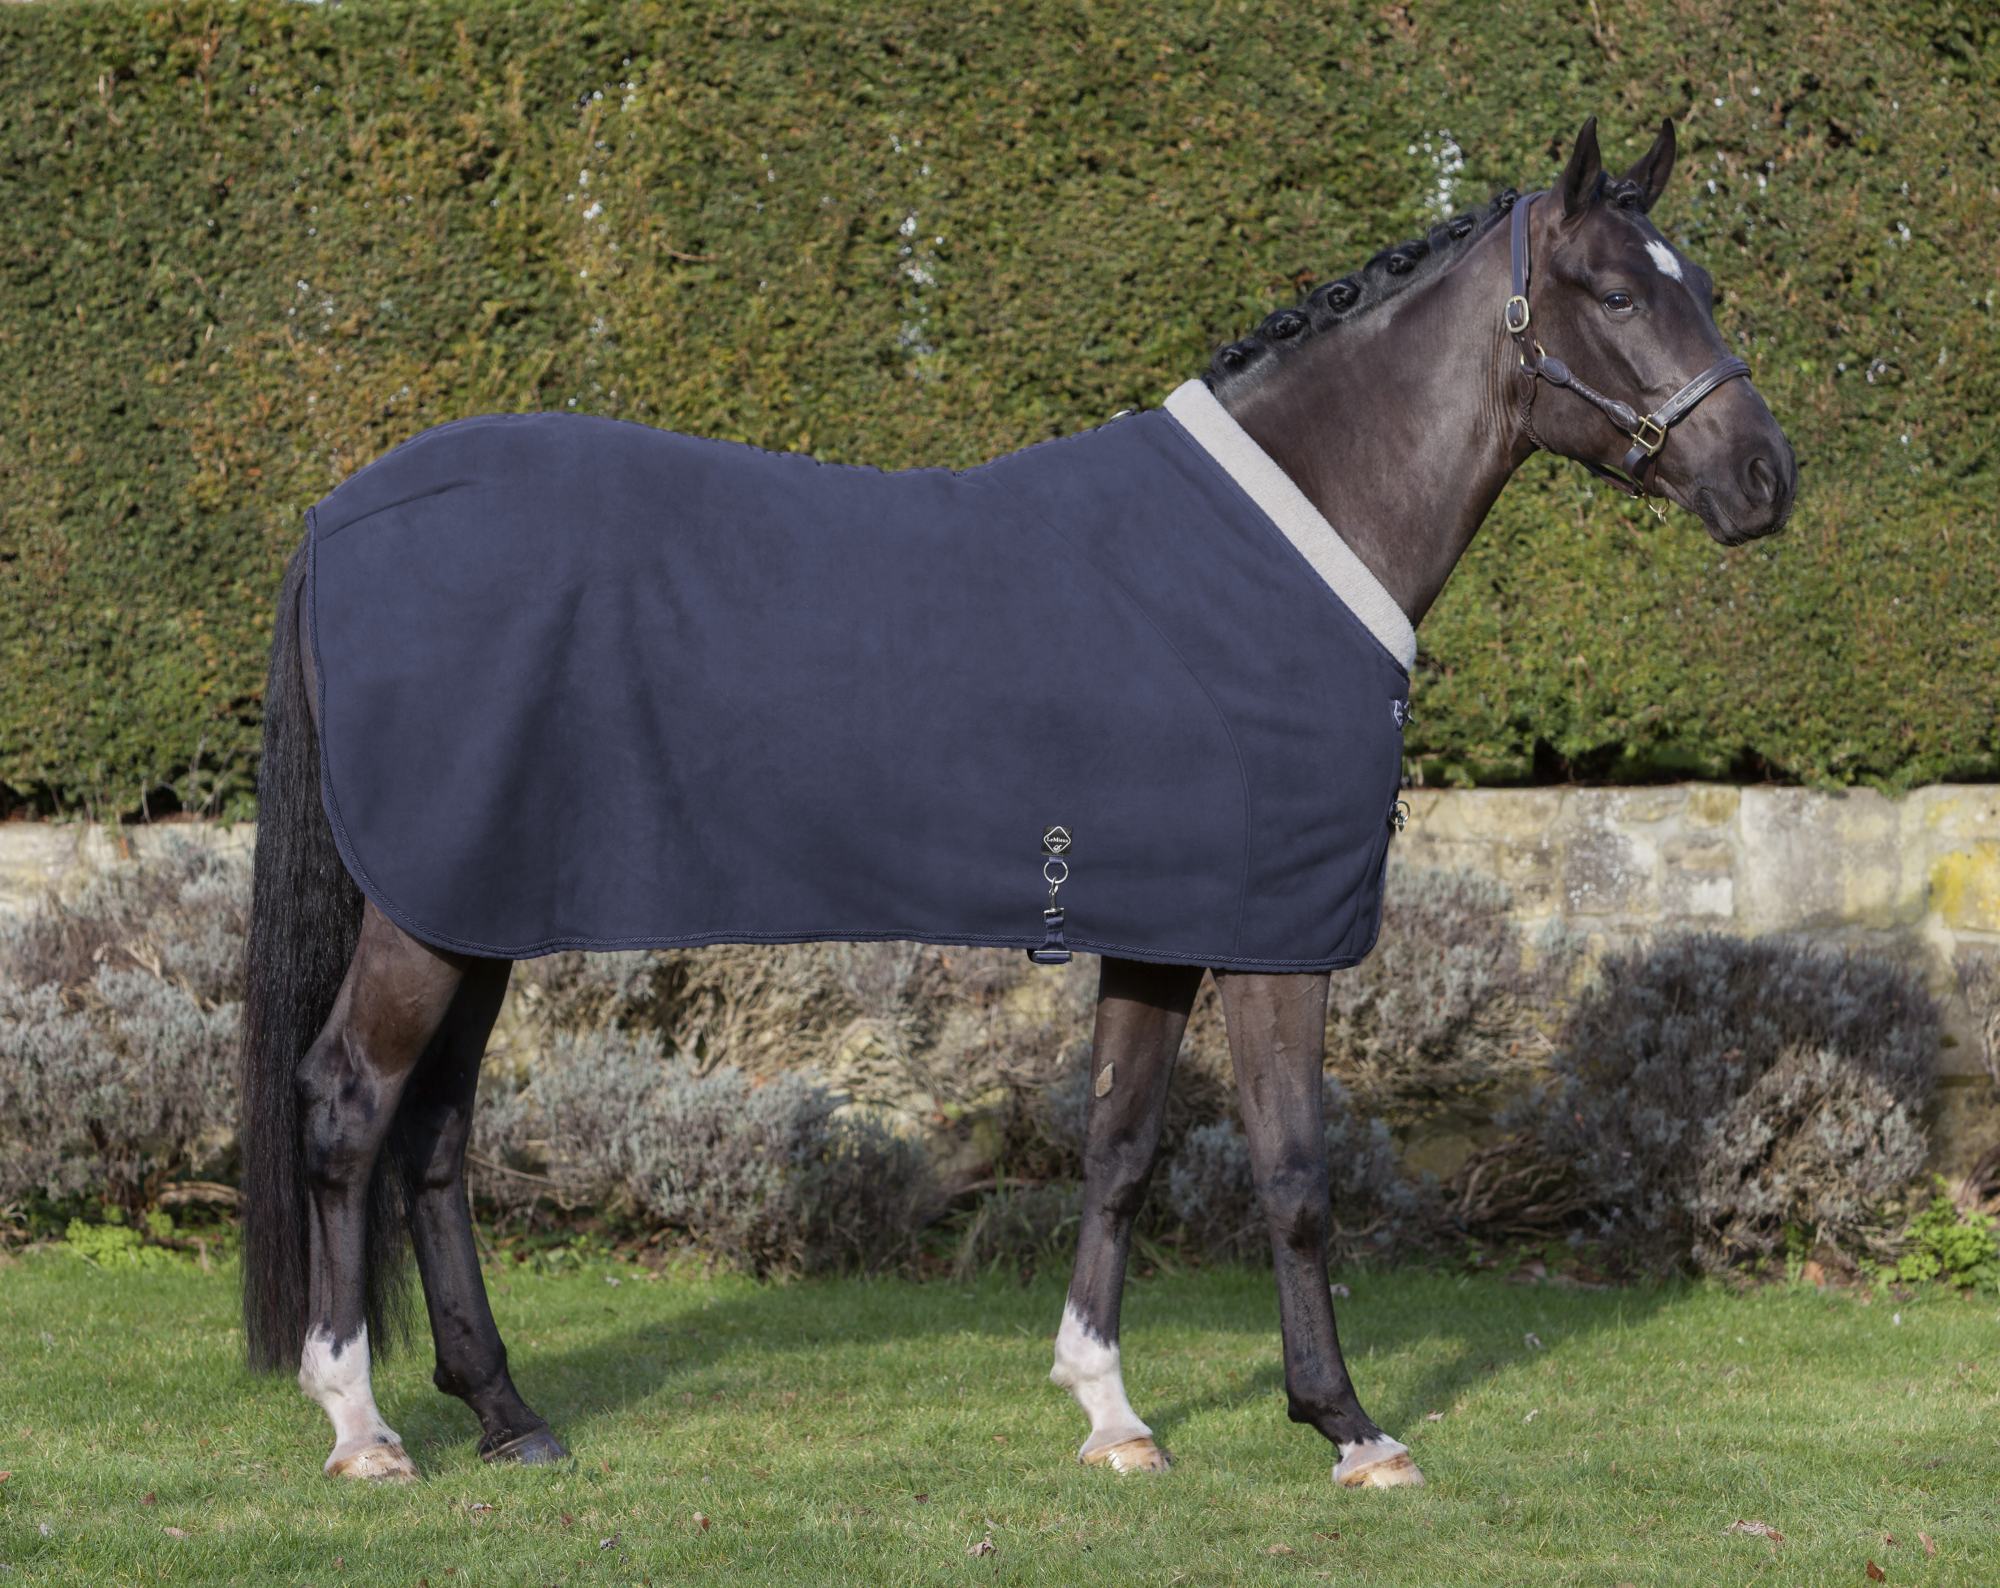 LeMieux Fleece Four Seasons Horse Fleece LeMieux Rug - Navy Blau 7a2b6f